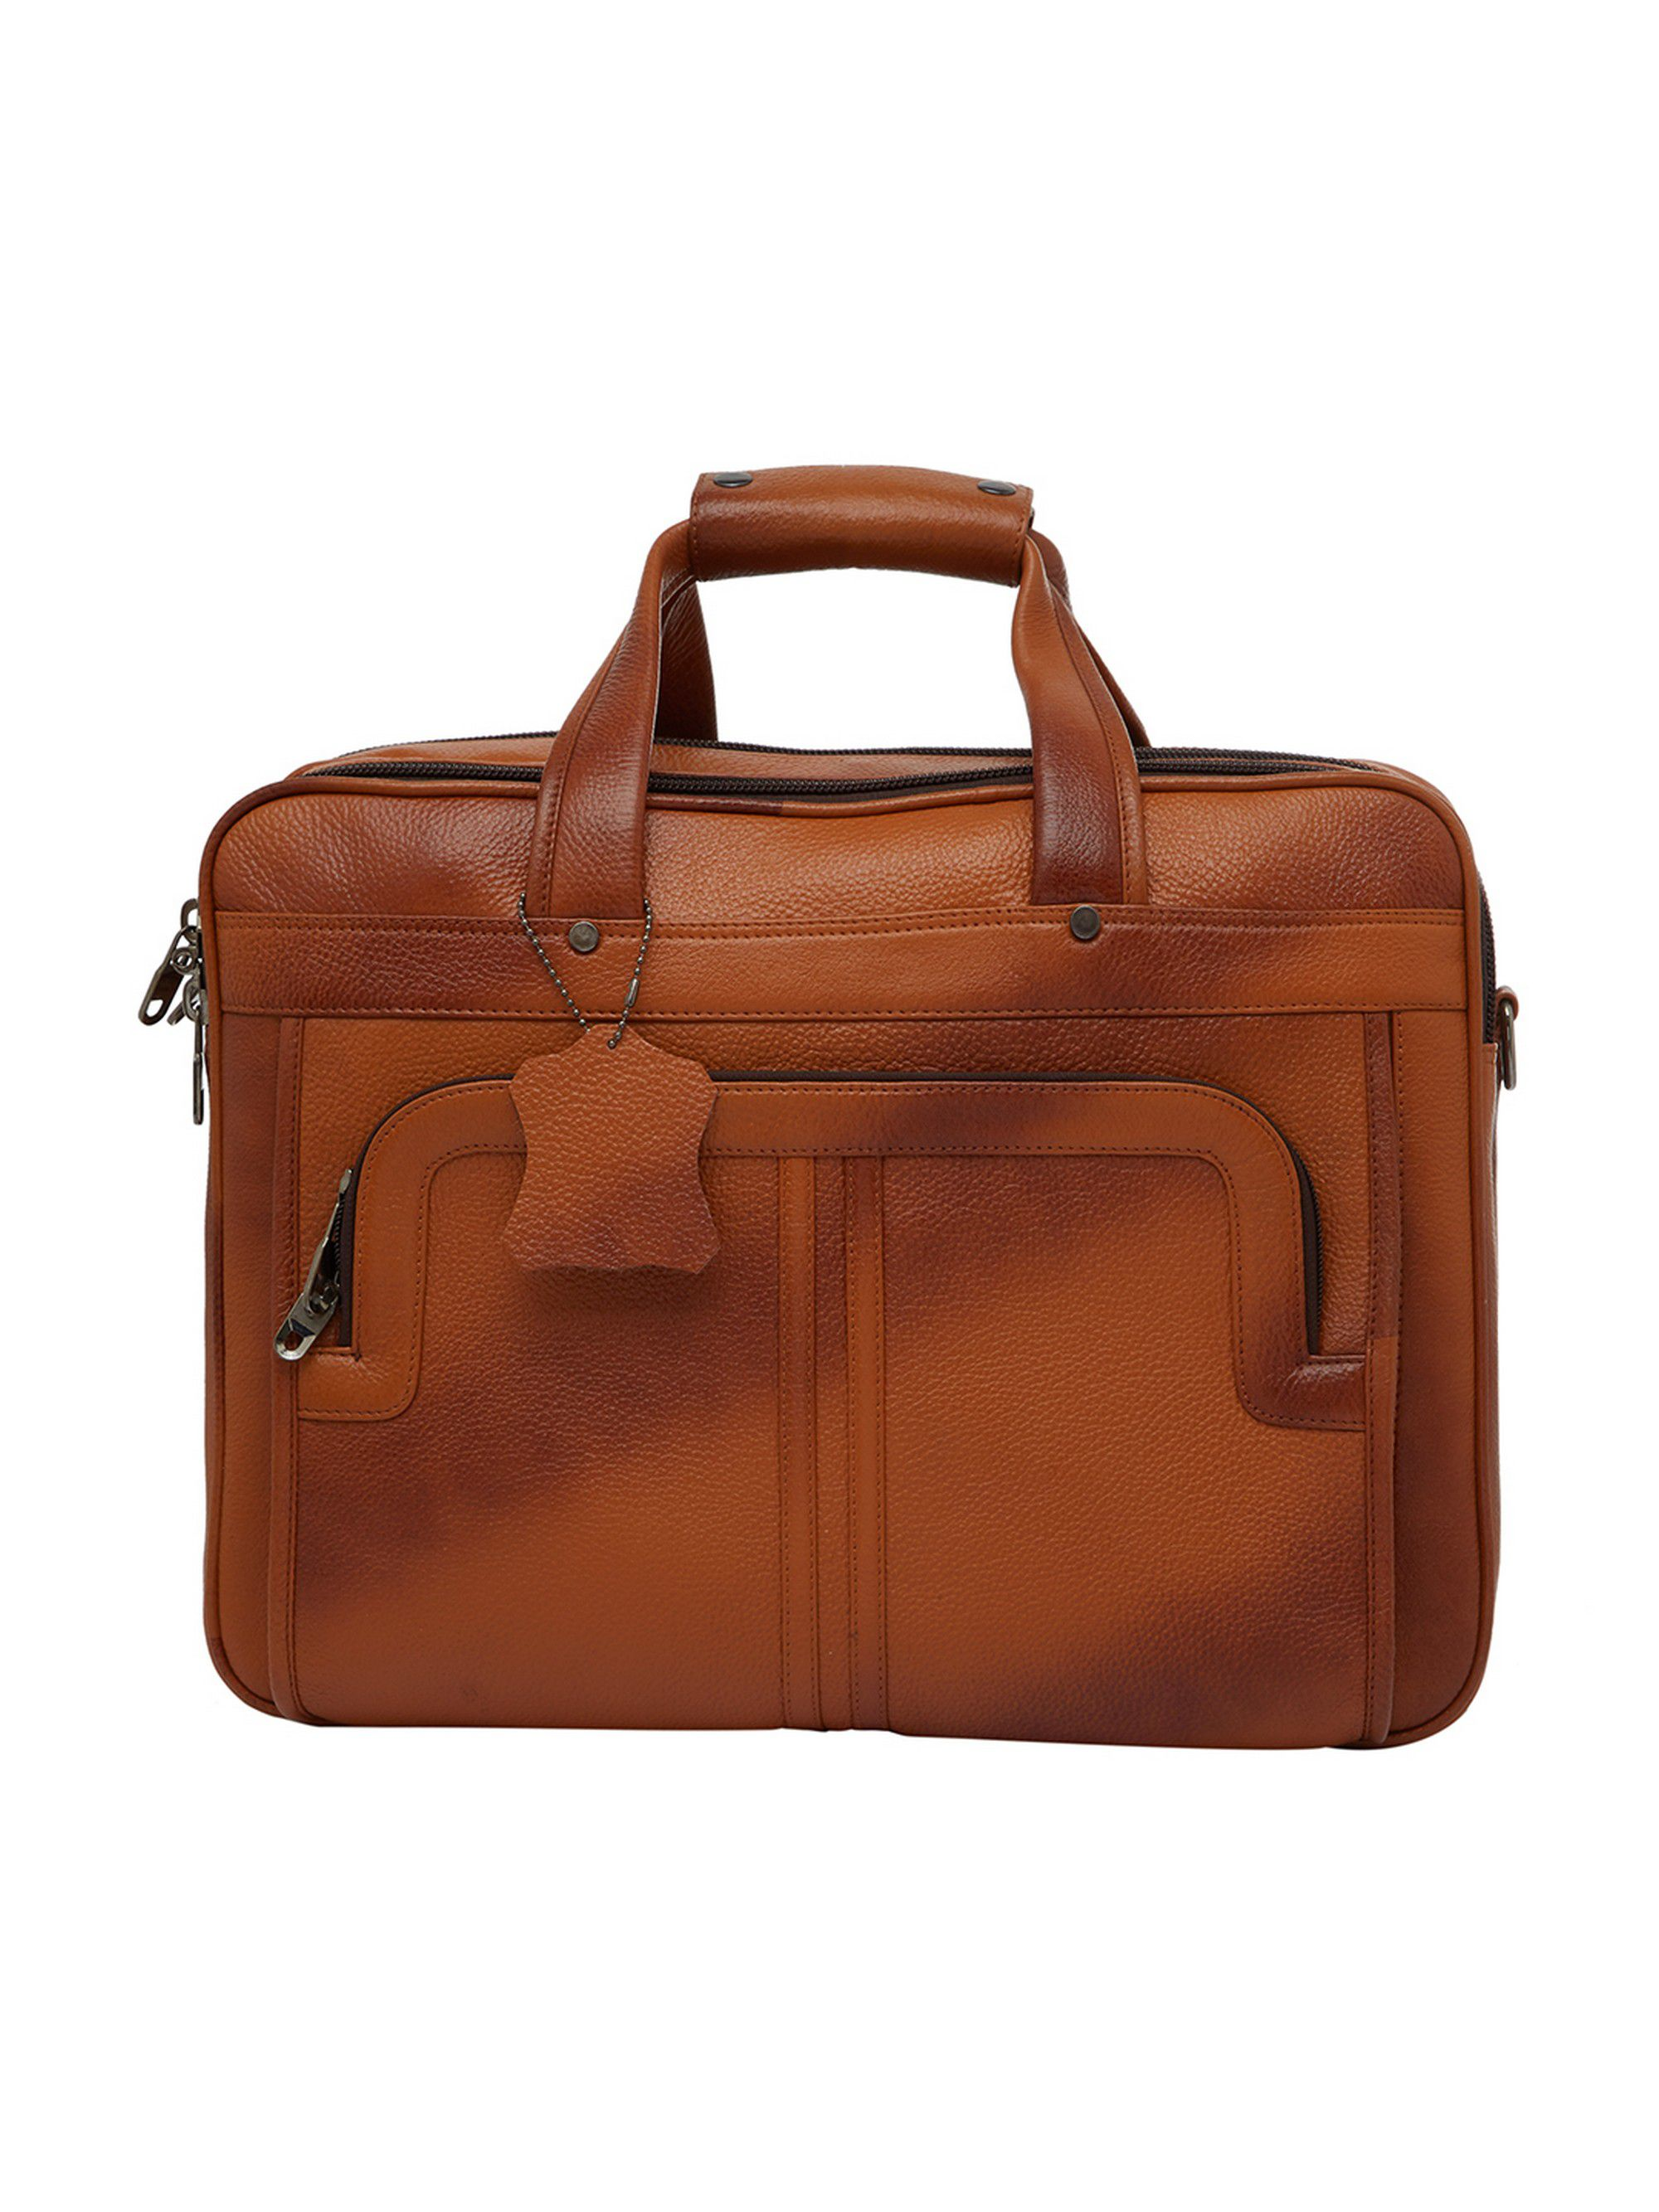 Leather World Office Bag Brown Leather Office Bag